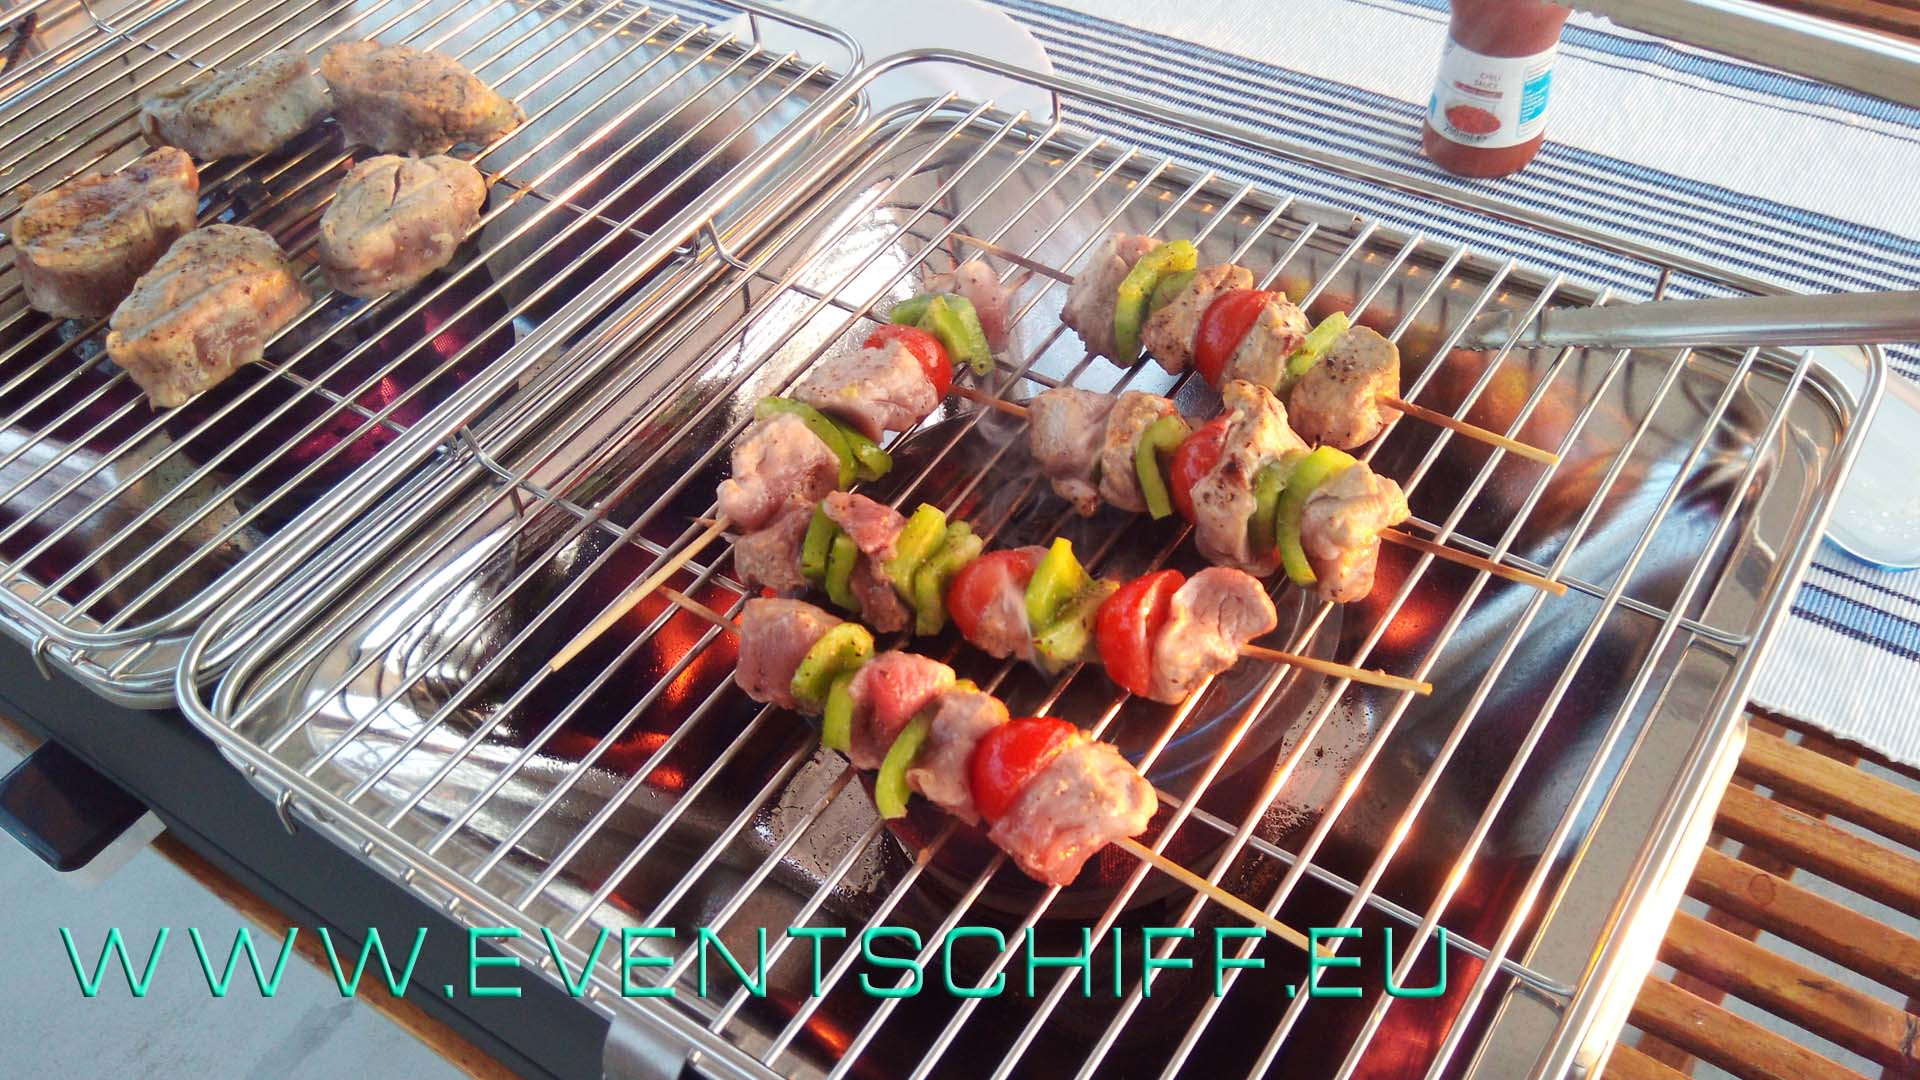 BBQ - Grillen an Bord @AHOIYACHTING